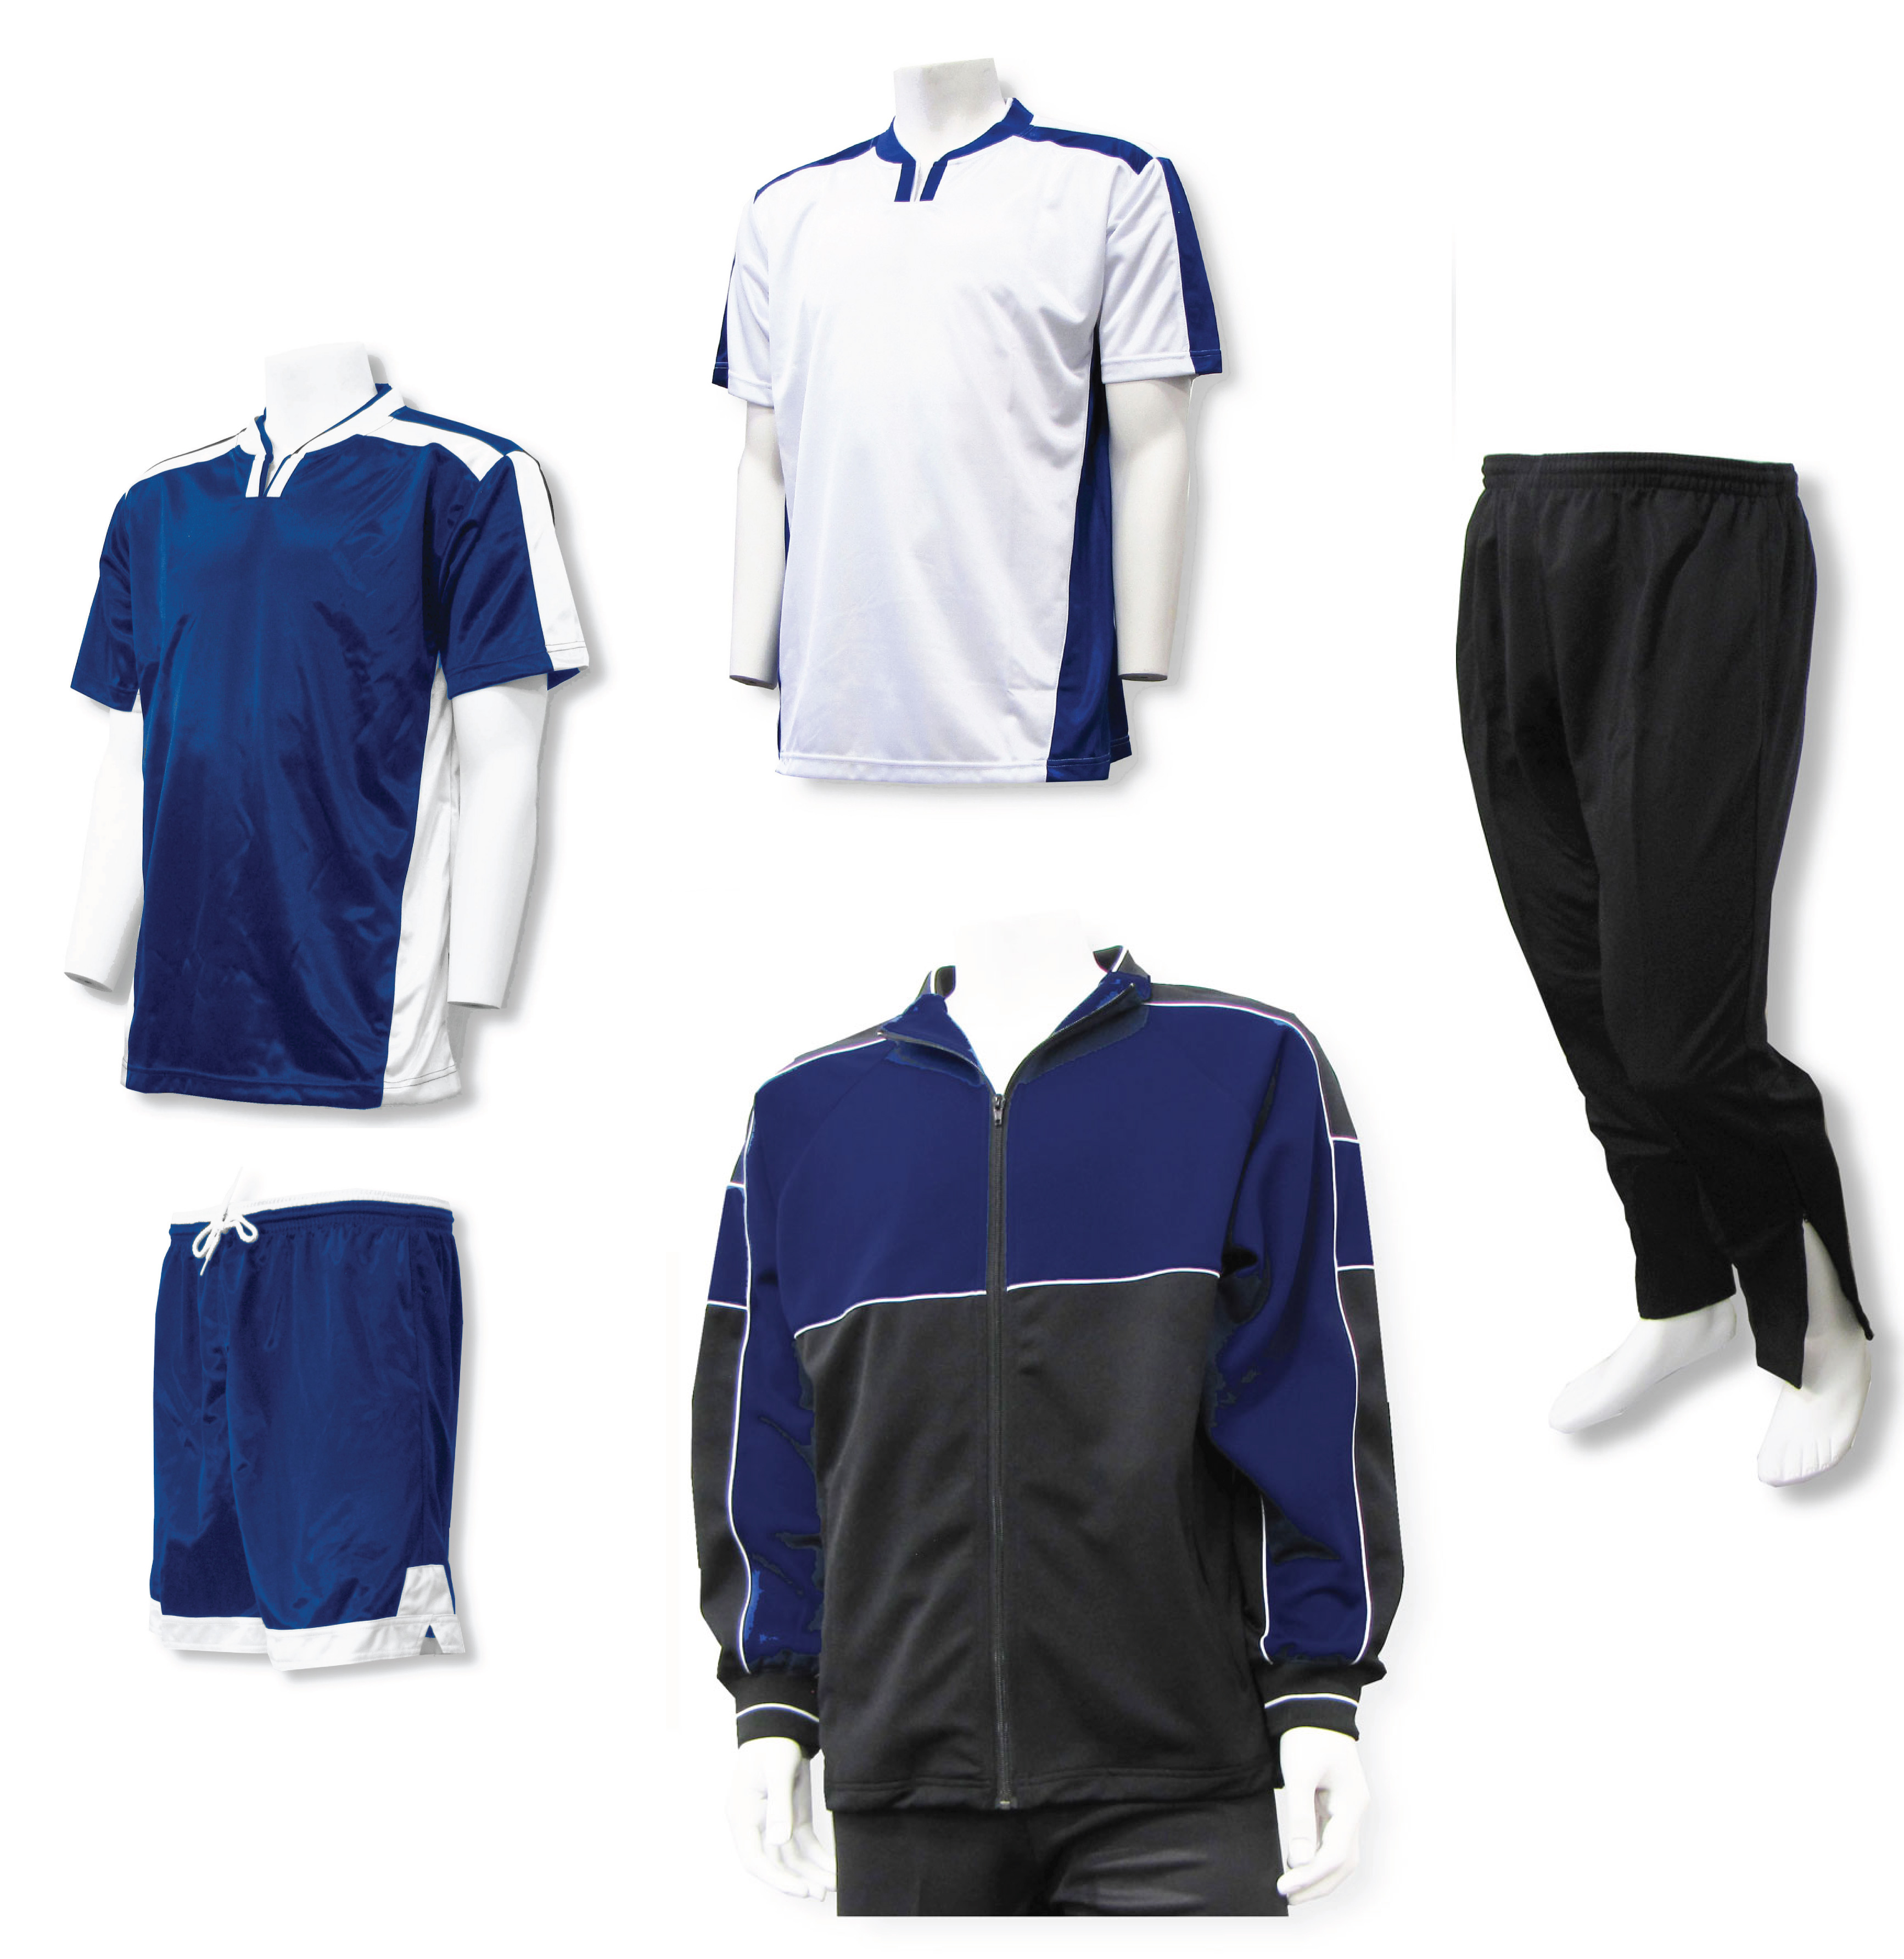 Winchester soccer team package with soccer uniform and warm-ups in navy/white by Code Four Atheltics